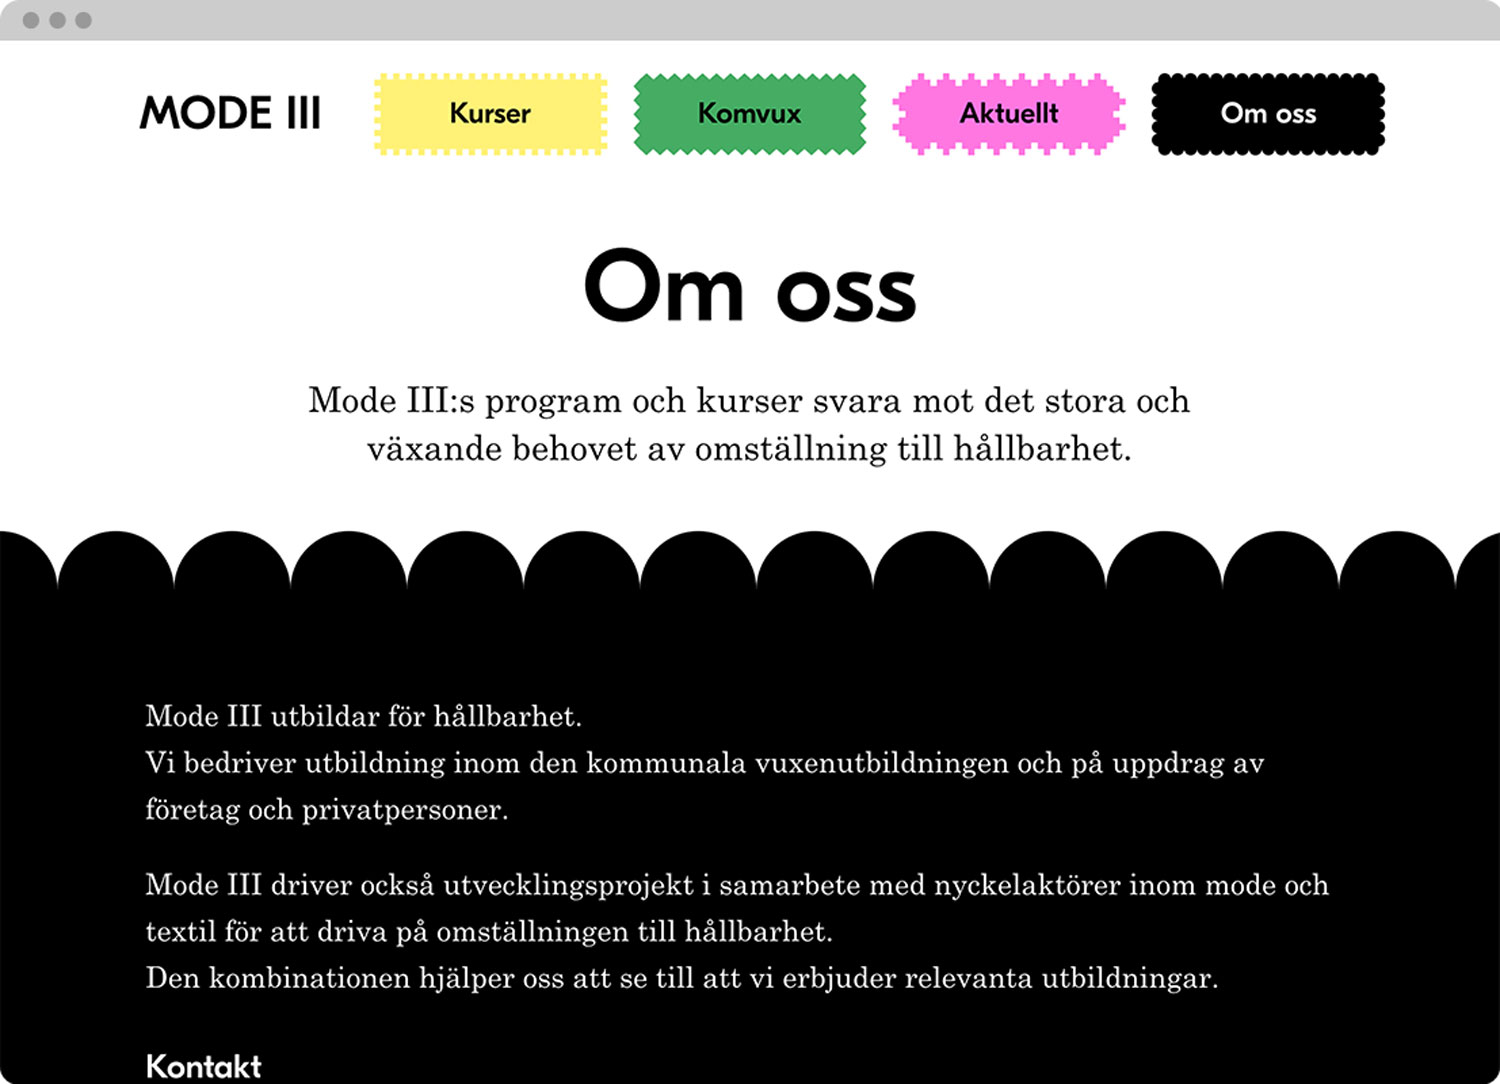 Mode III website, design by Ekstra